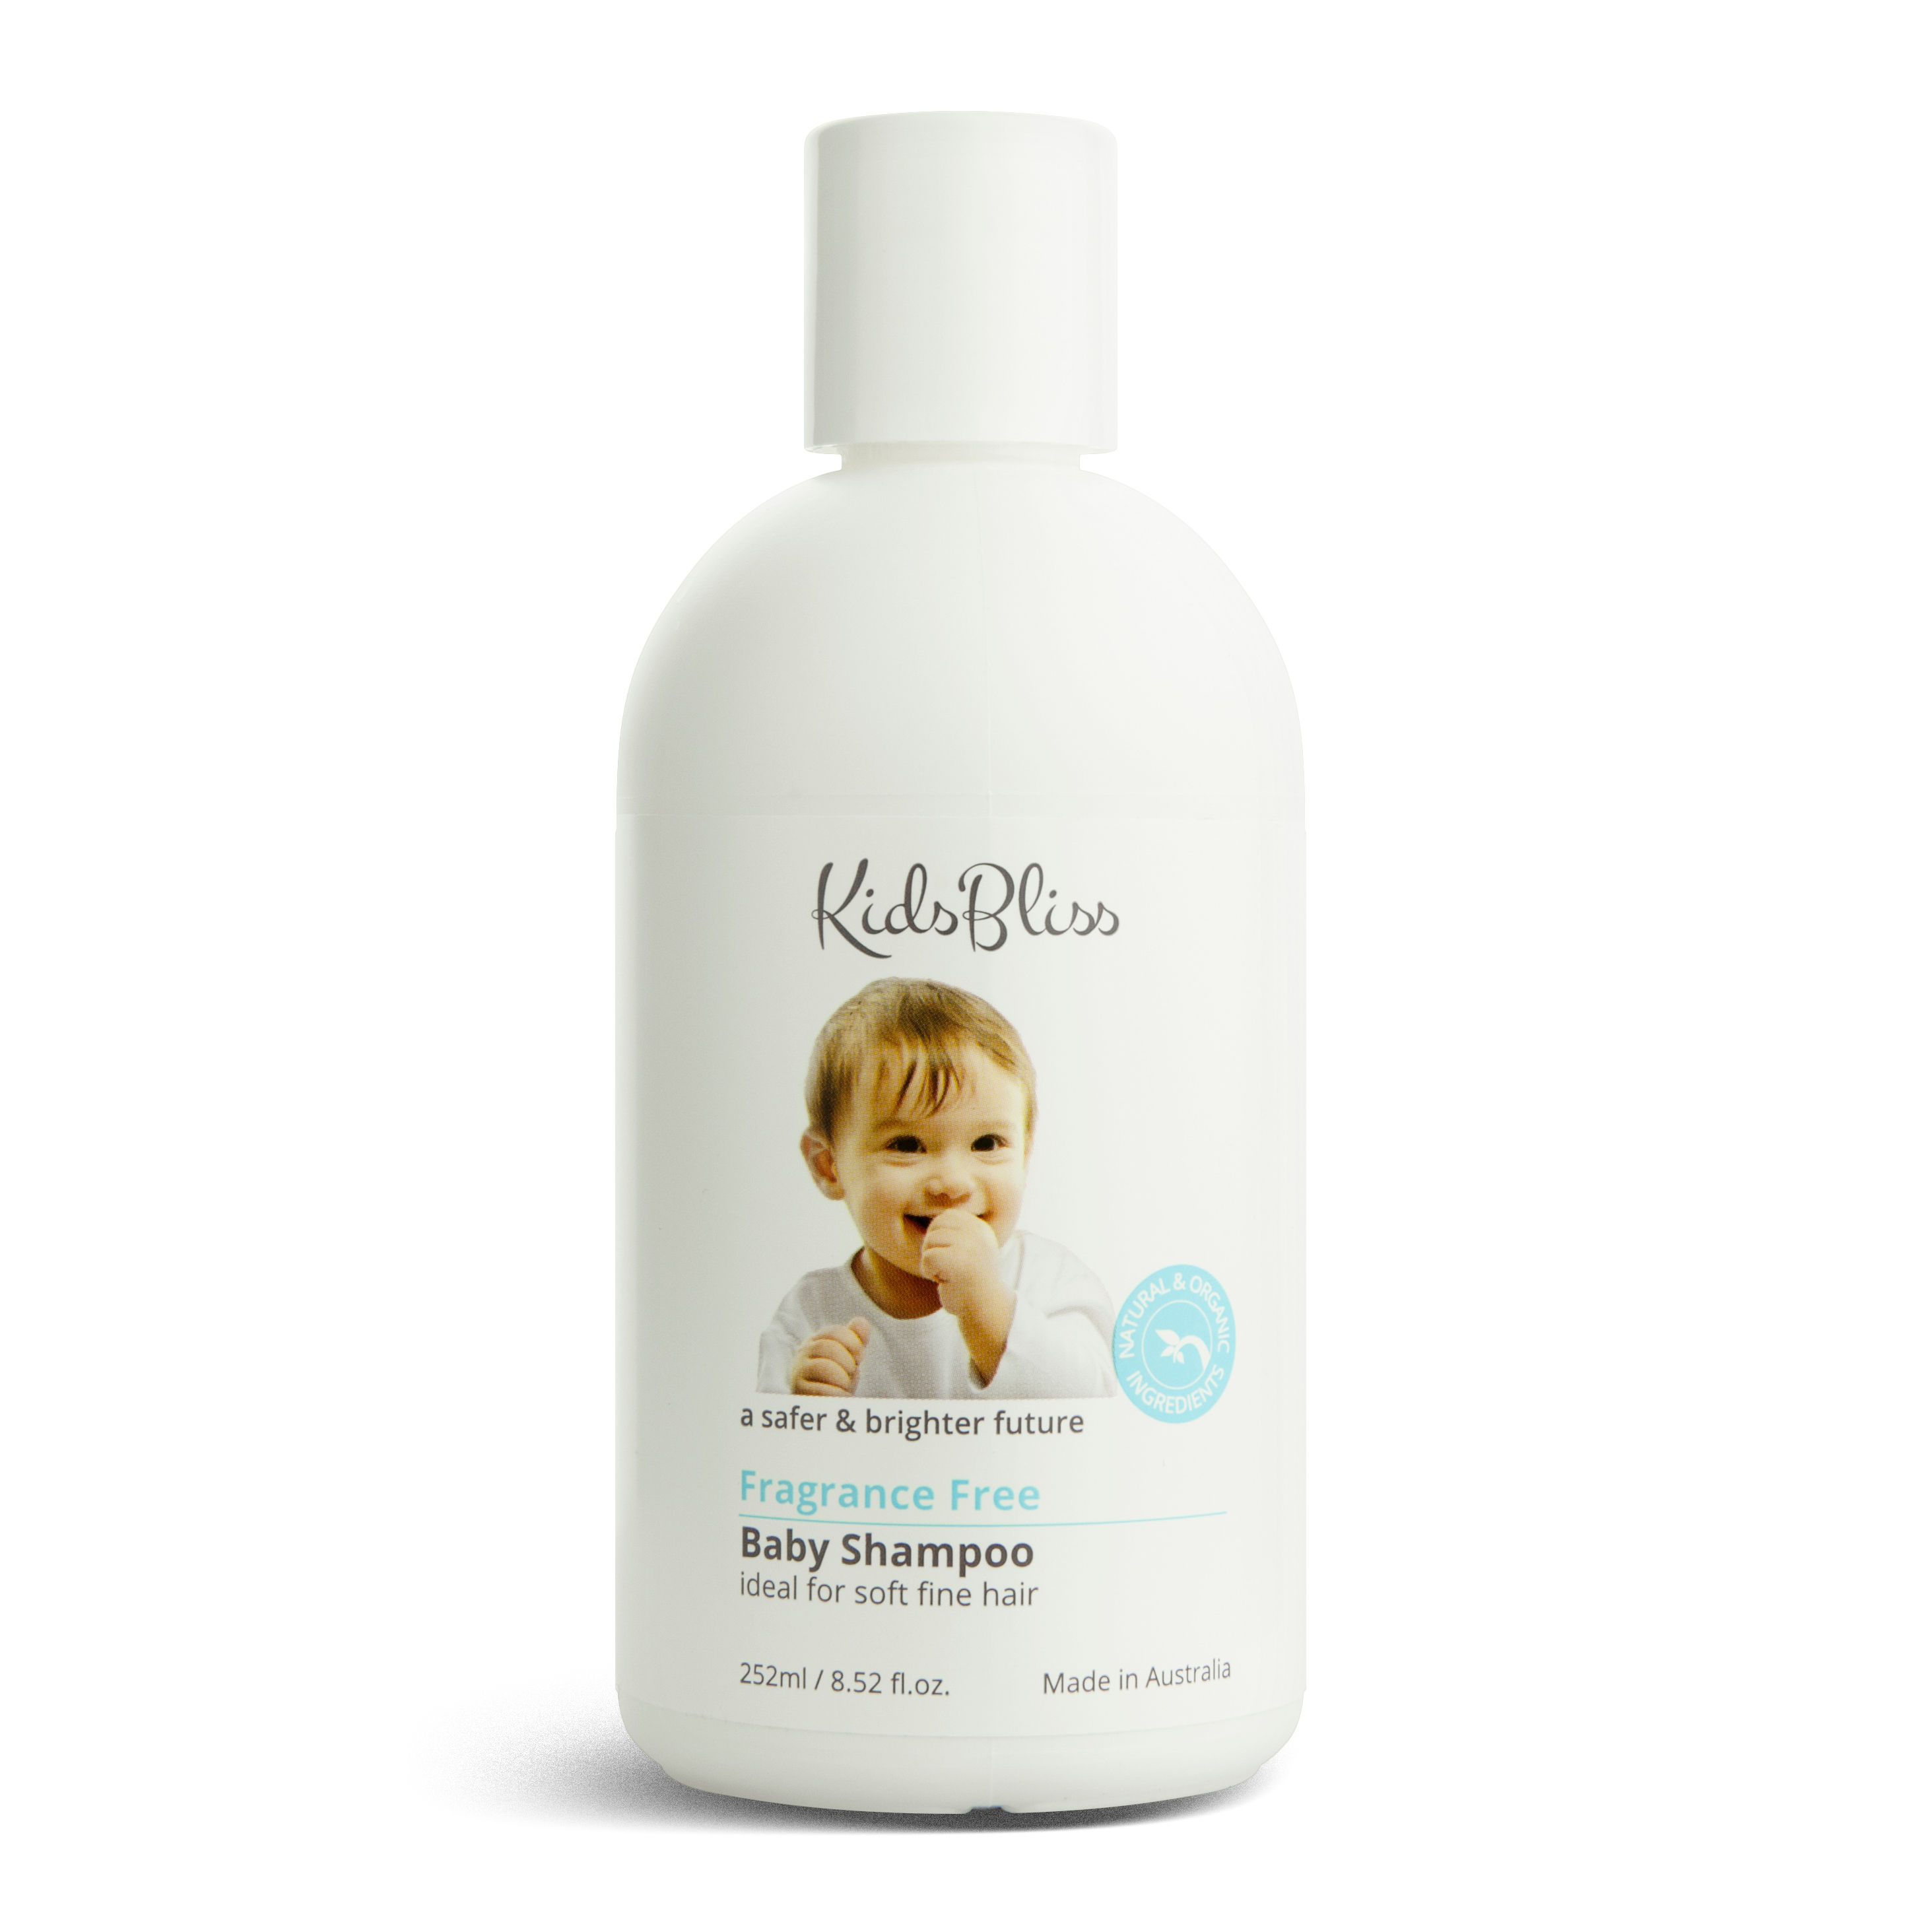 KidsBliss - Baby Shampoo - FRAGRANCE FREE - Australian Certified Organic (ACO) - 252ml - (Pure, Natural, Organic)